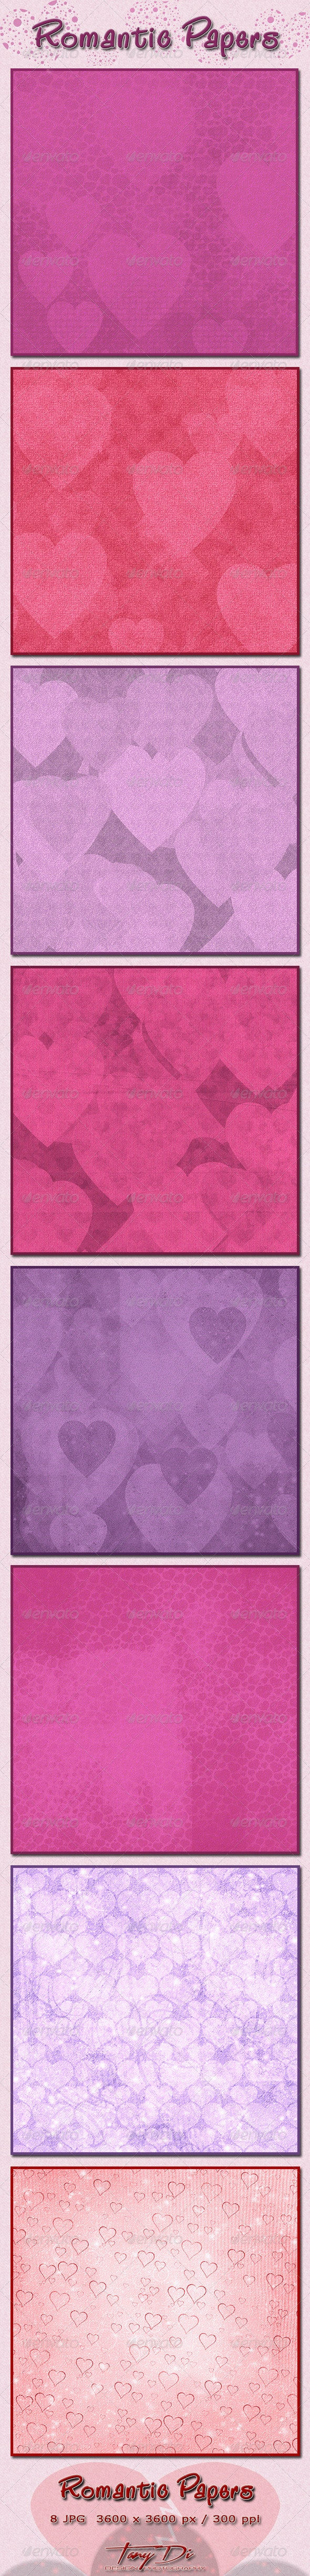 Romantic Papers - Paper Textures